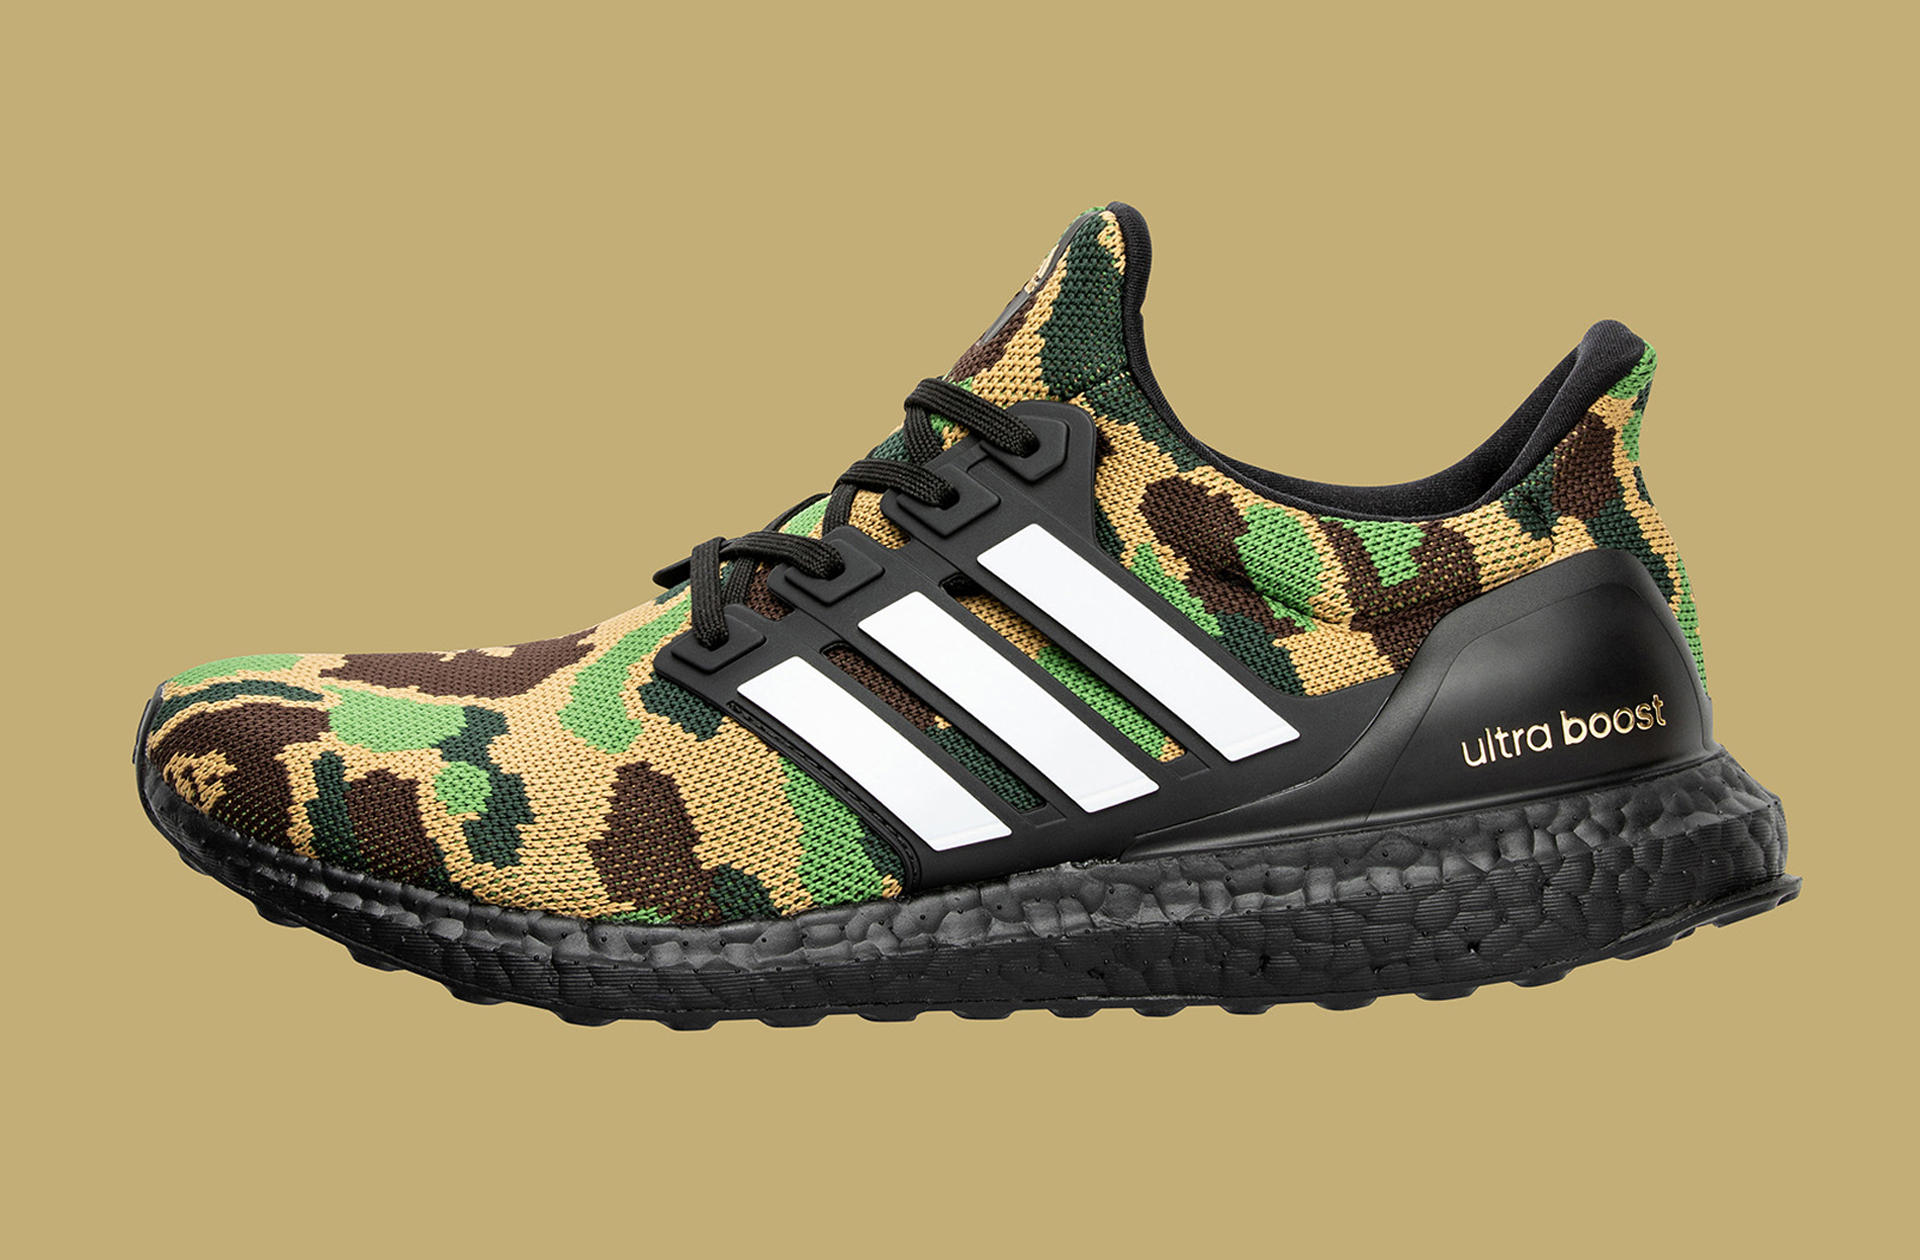 sneakers for cheap 467fa 81998 The adidas x BAPE Super Bowl collection is insane - Houston